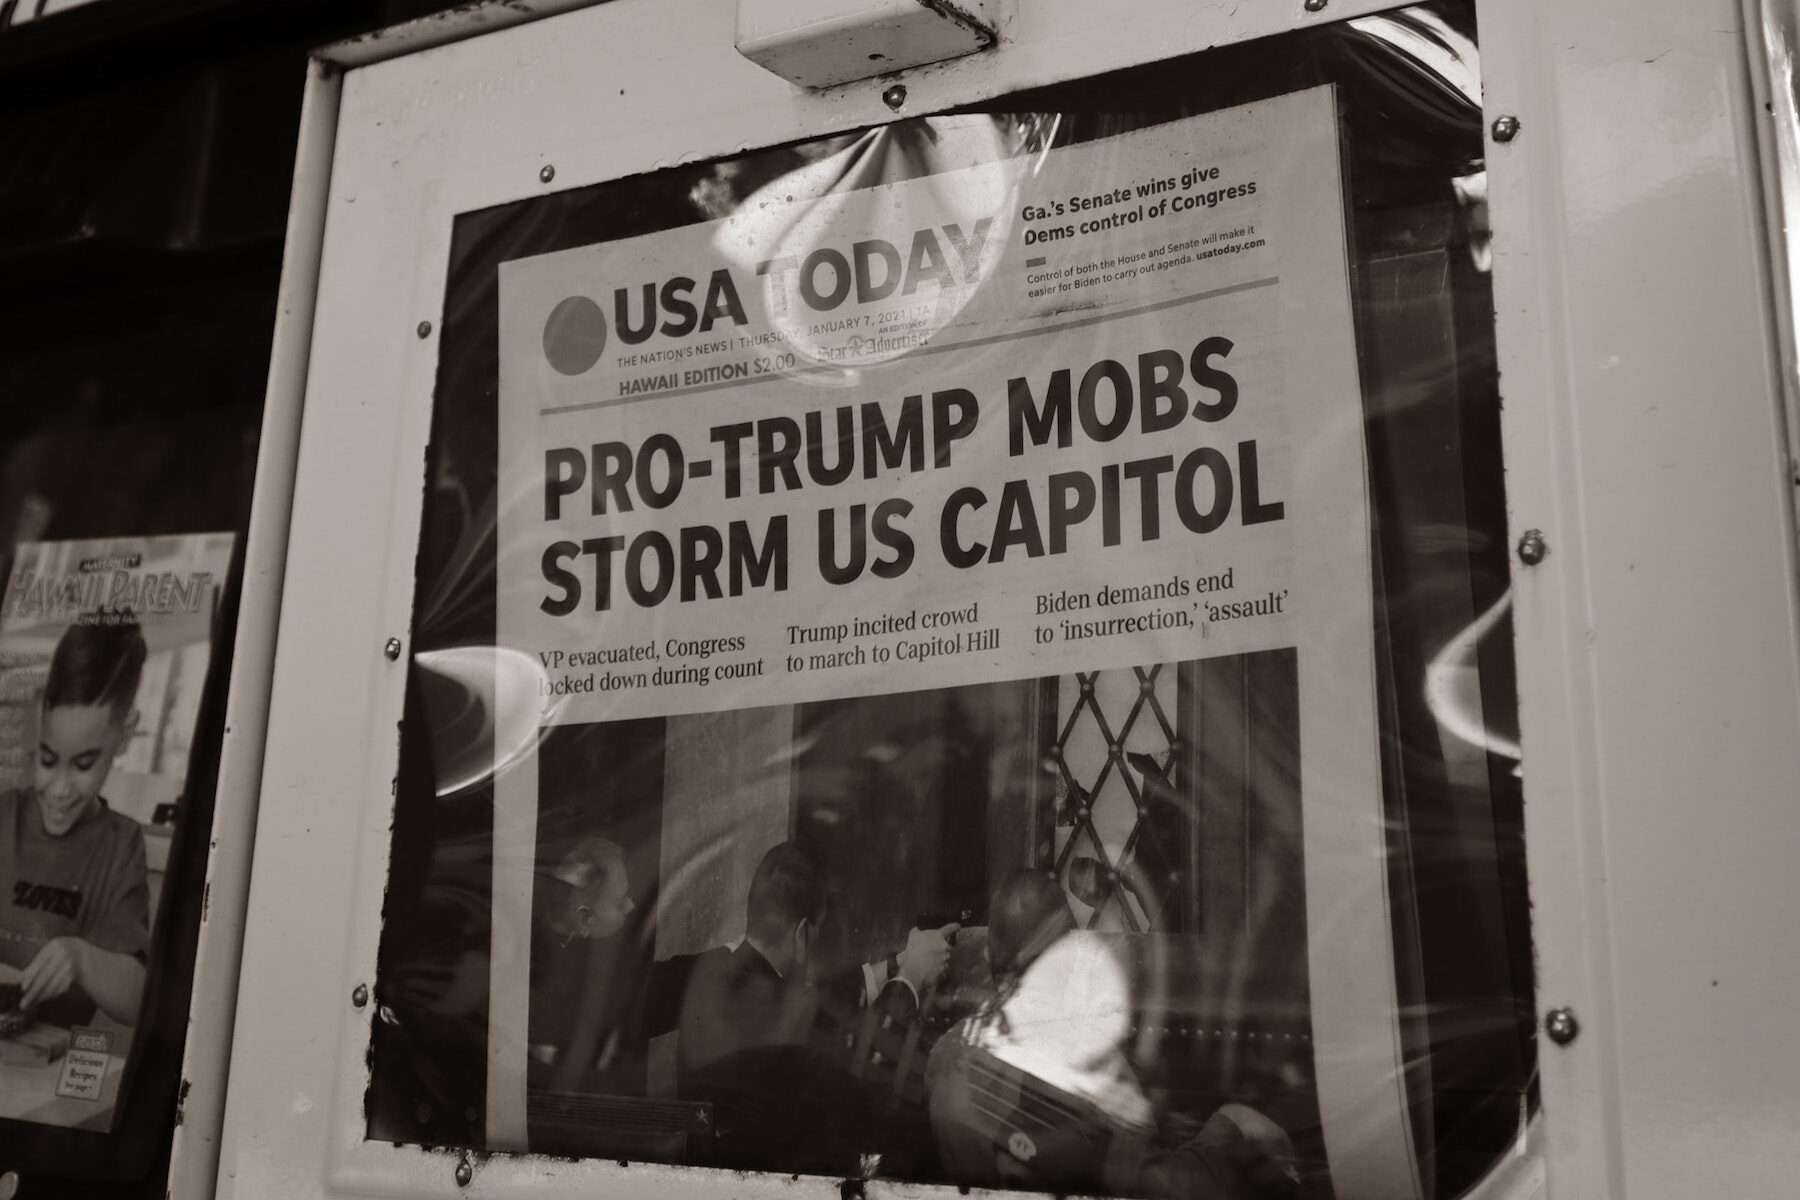 Newspaper headline about US Capitol attacks. Jan 7, 2021. Photo by little plant on Unsplash.